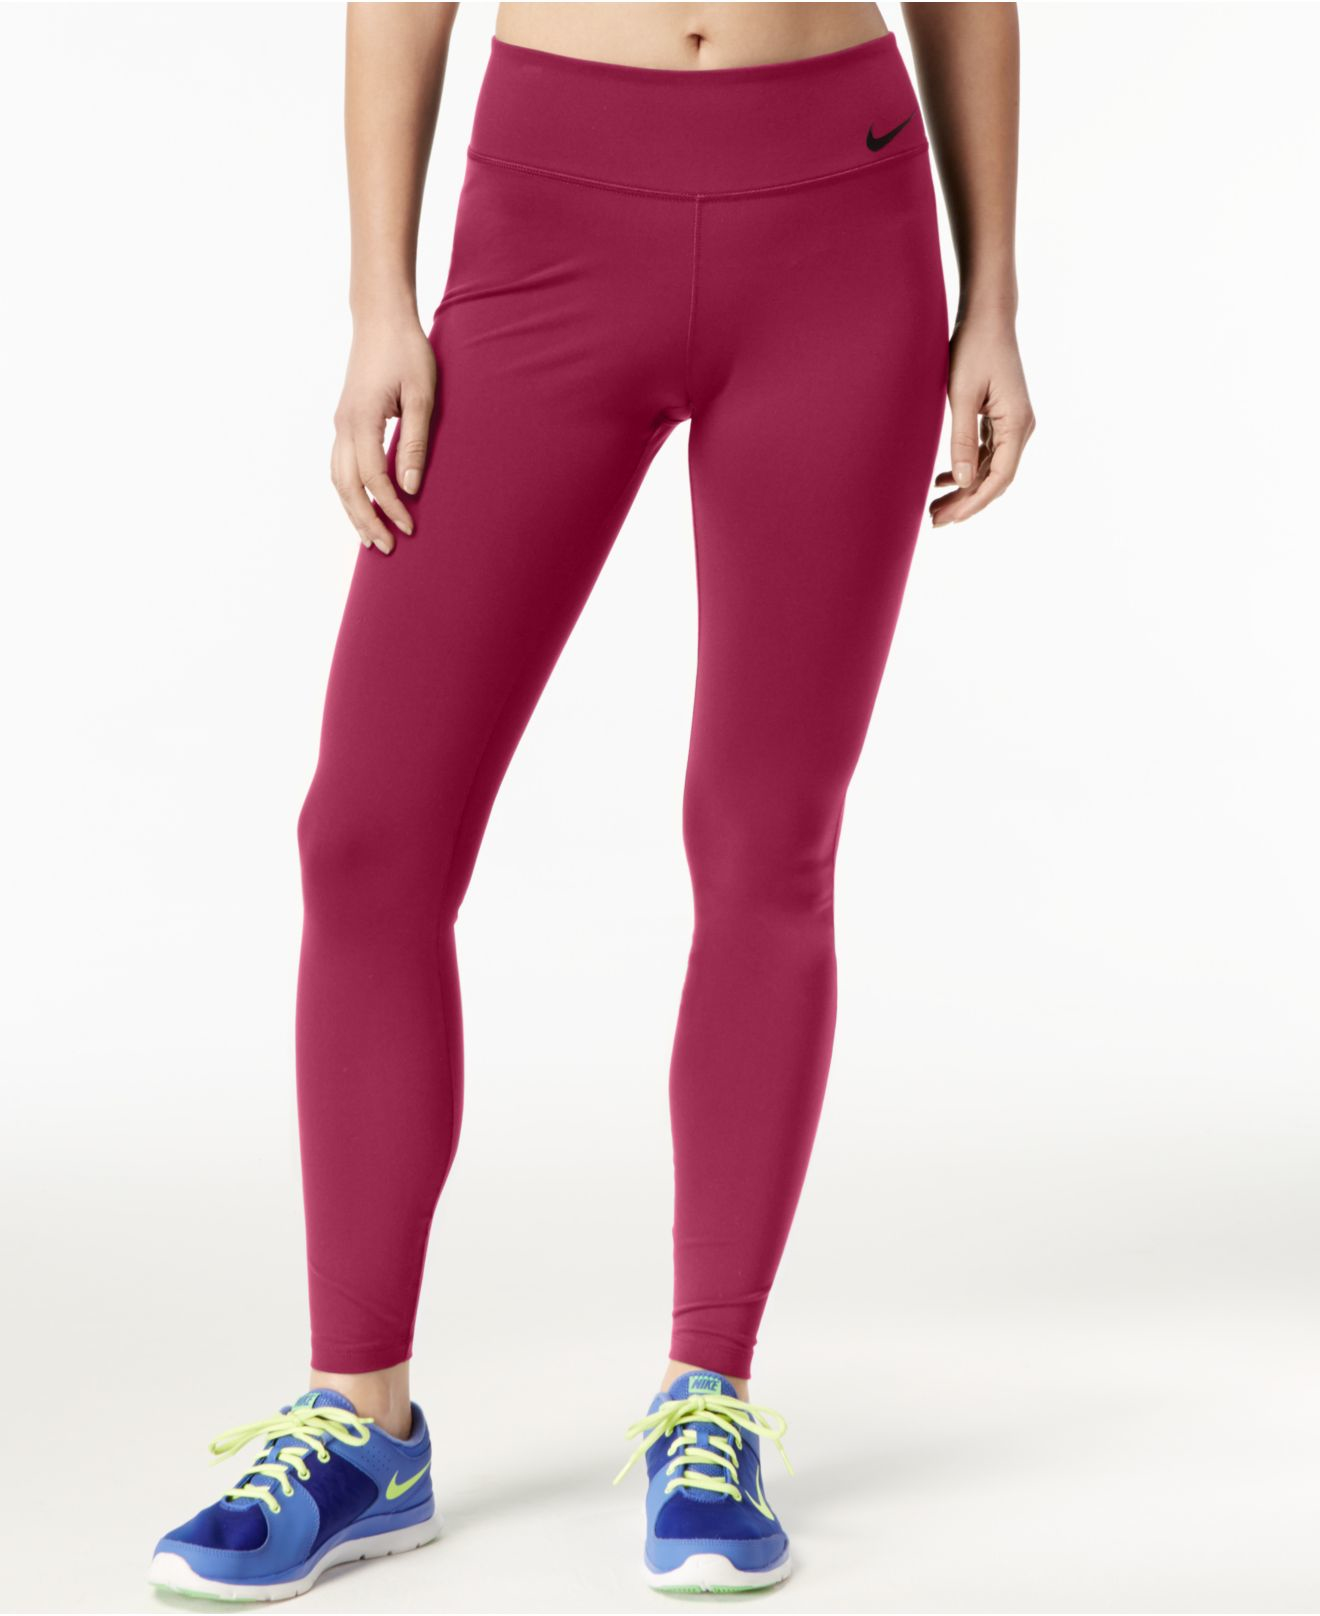 e5d59411aff58 Nike Power Legendary Compression Leggings in Red - Lyst